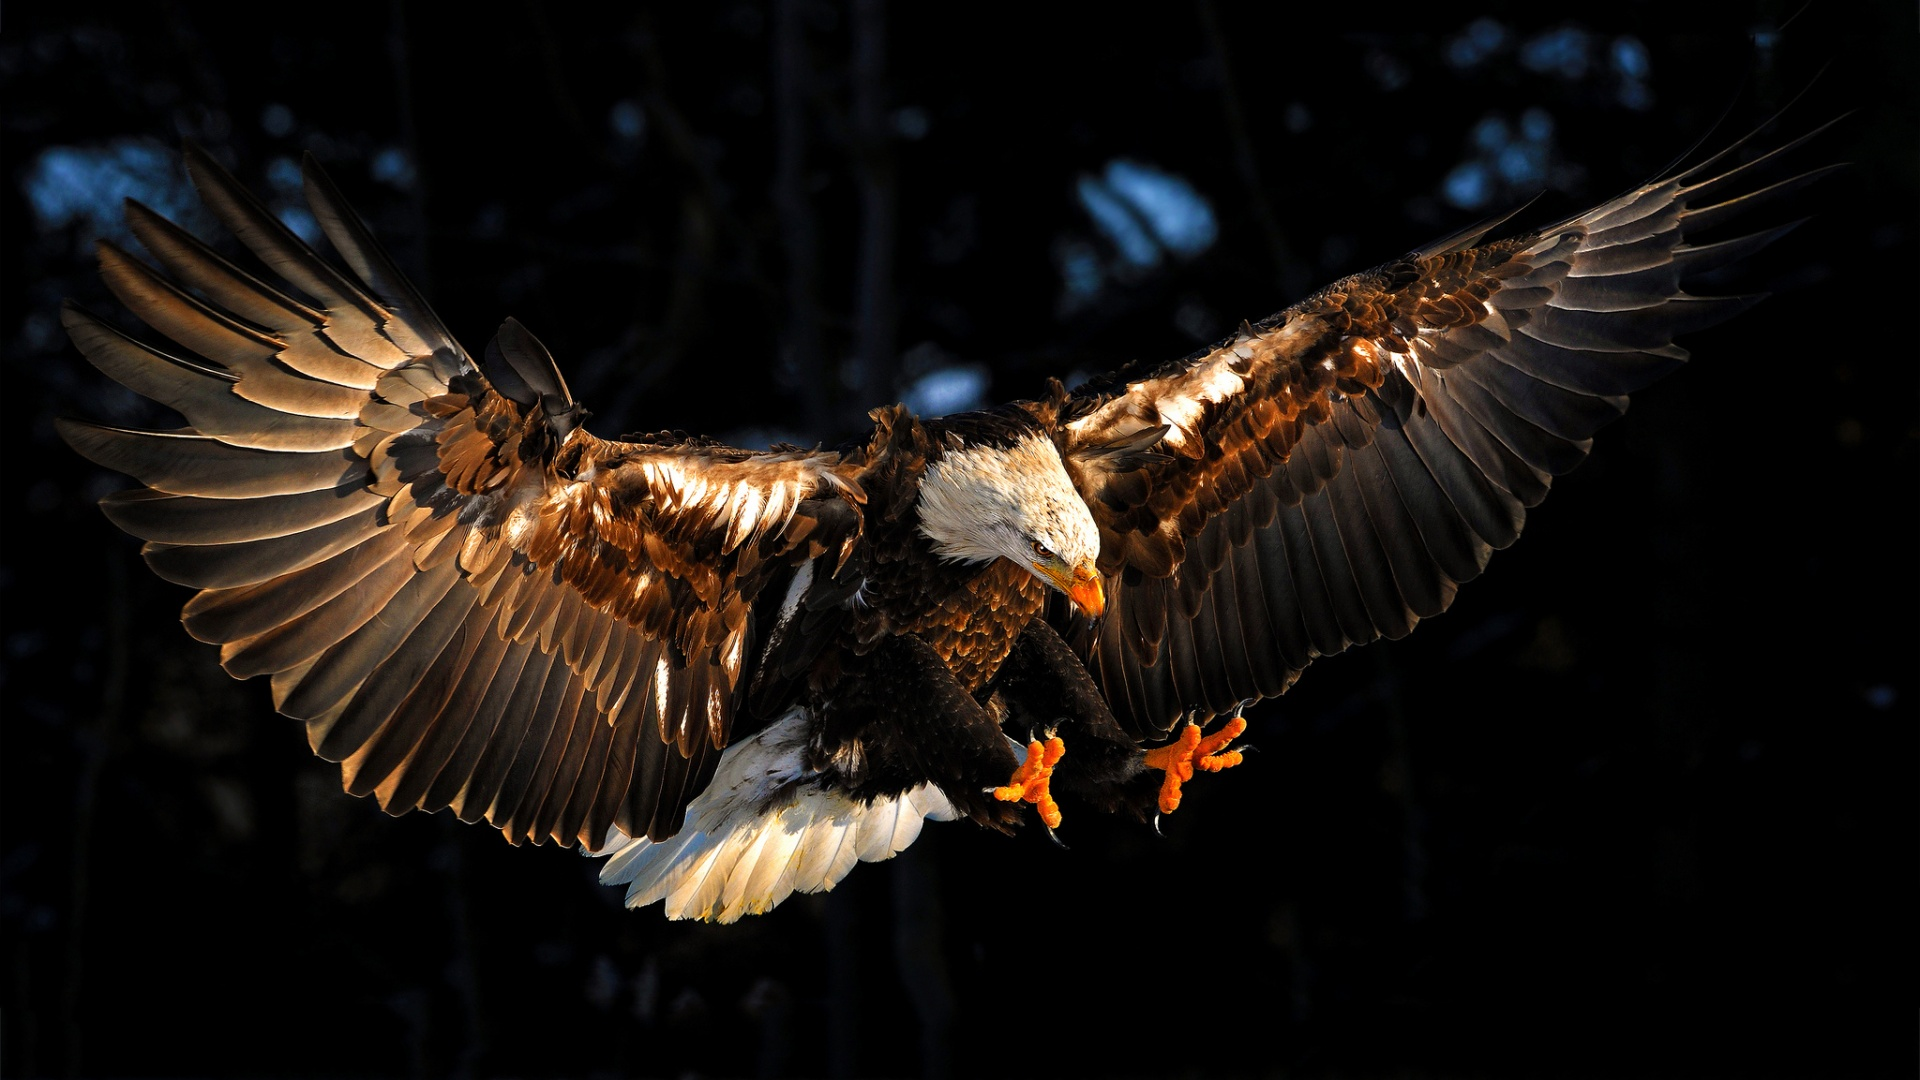 bald eagle wallpaper hd 012